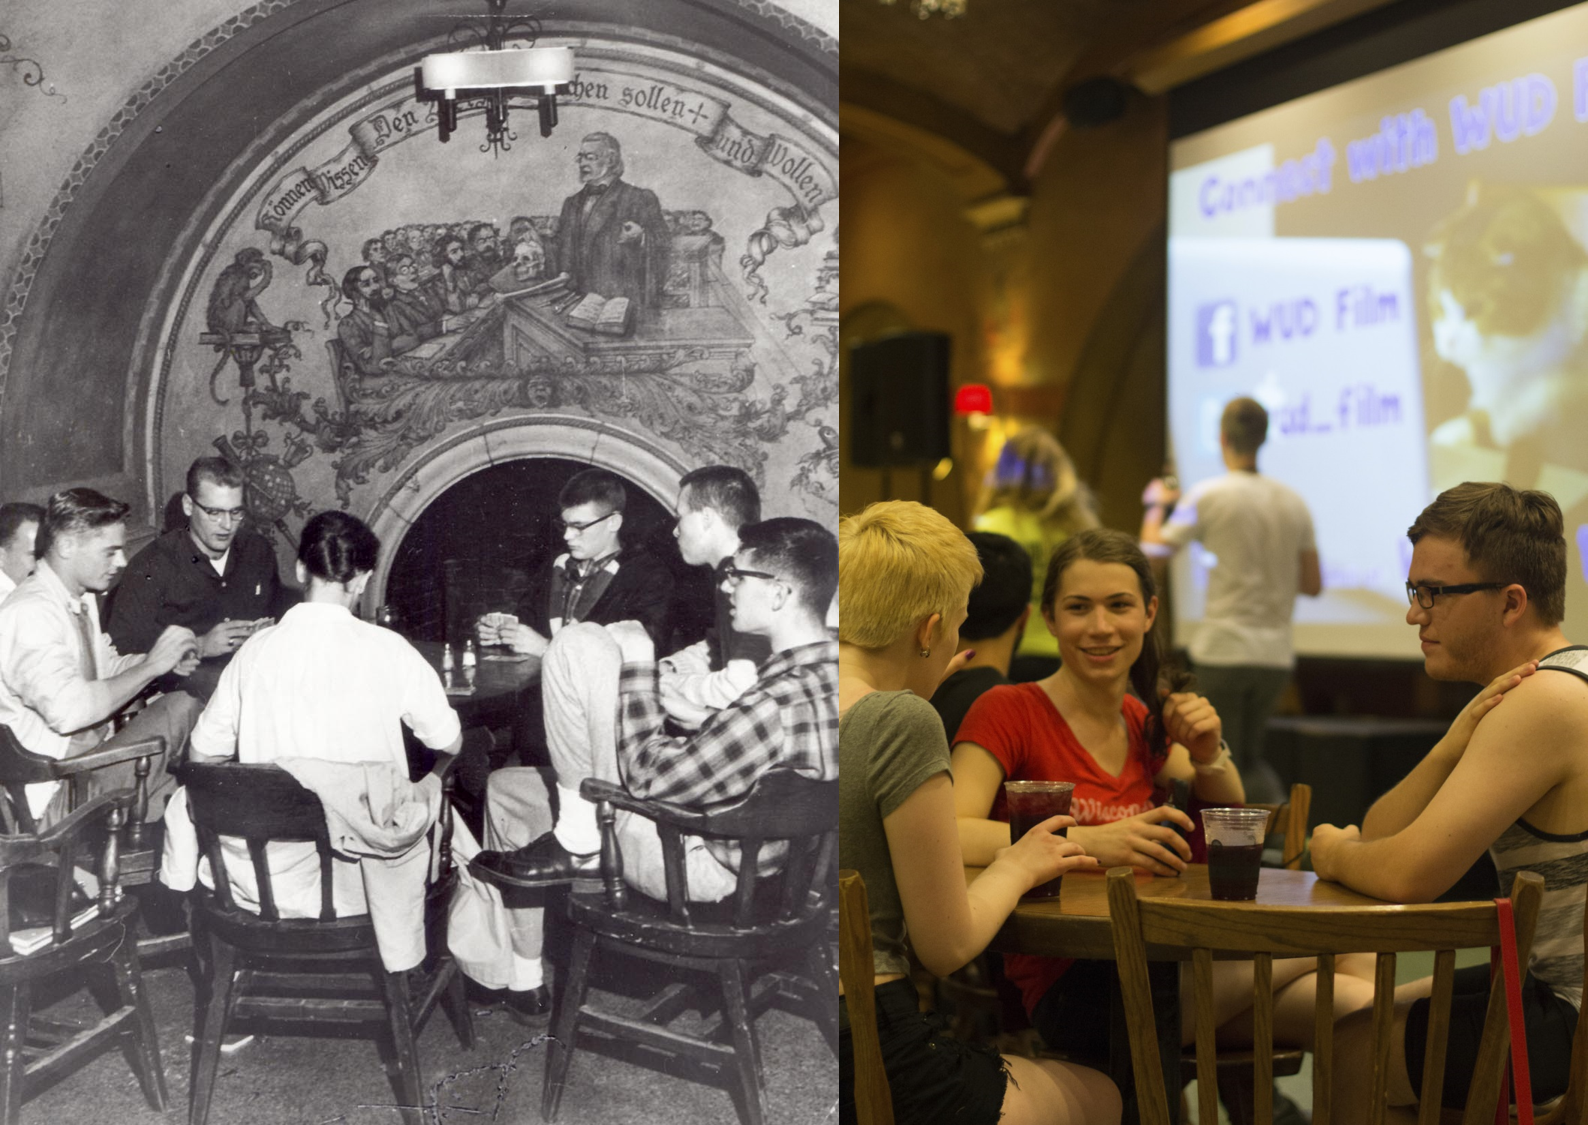 Left: Friends gather while playing cards at the Rathskeller circa 1965. Right: Students hangout in der Rathskeller.